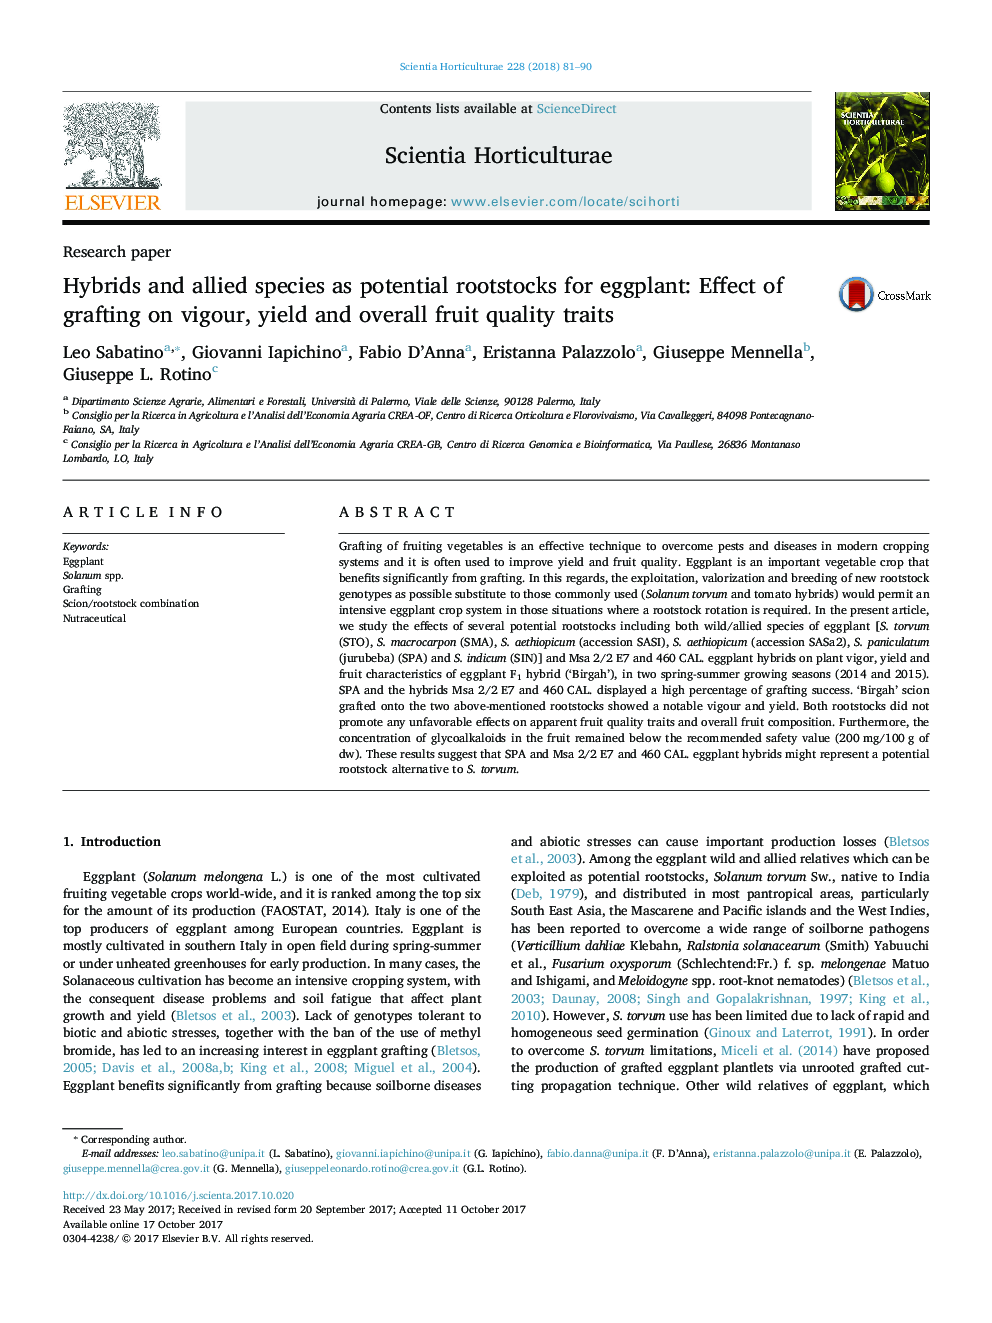 Research paperHybrids and allied species as potential rootstocks for eggplant: Effect of grafting on vigour, yield and overall fruit quality traits